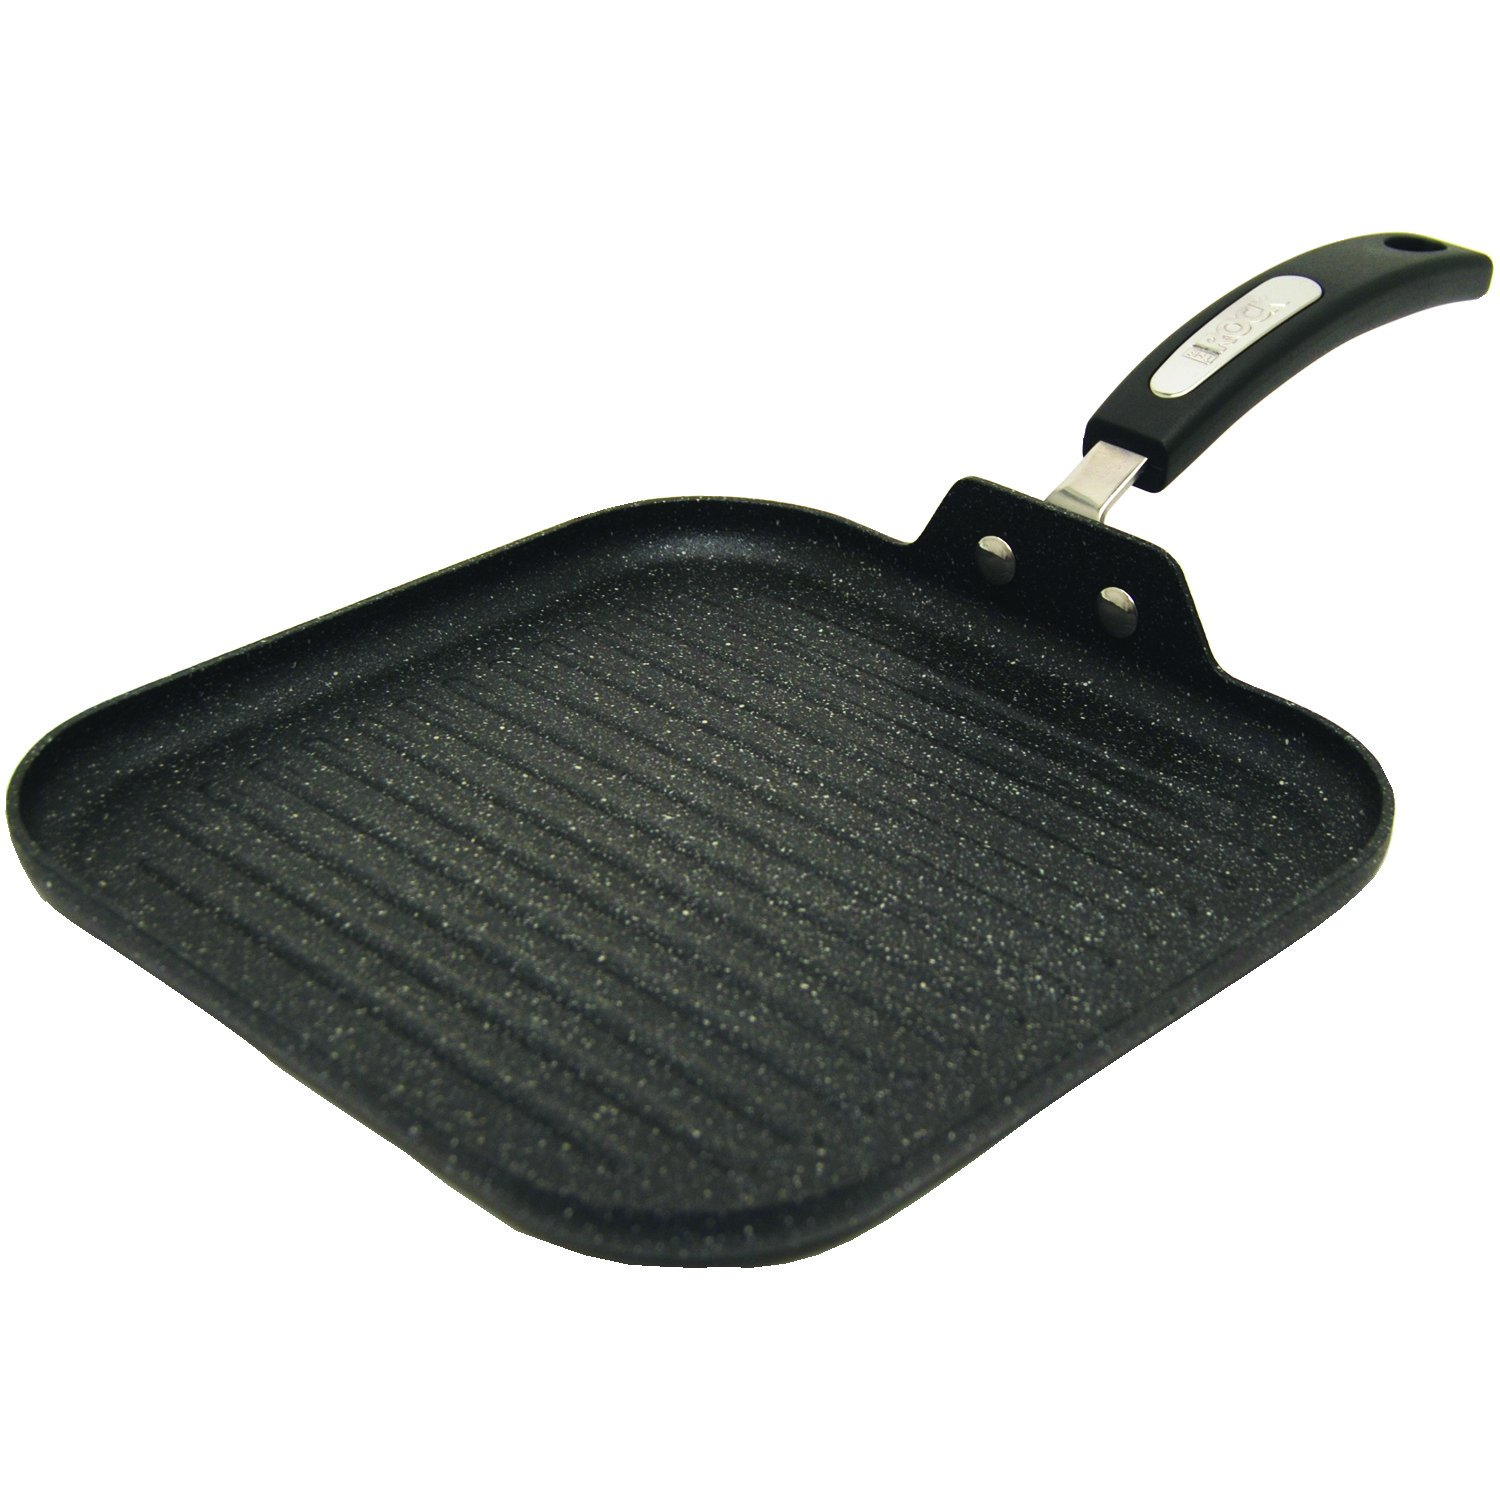 The Rock by Starfrit 030321-006-000 The Rock(TM) by Starfrit(R) 10 Grill Pan with Bakelite(R) Handles